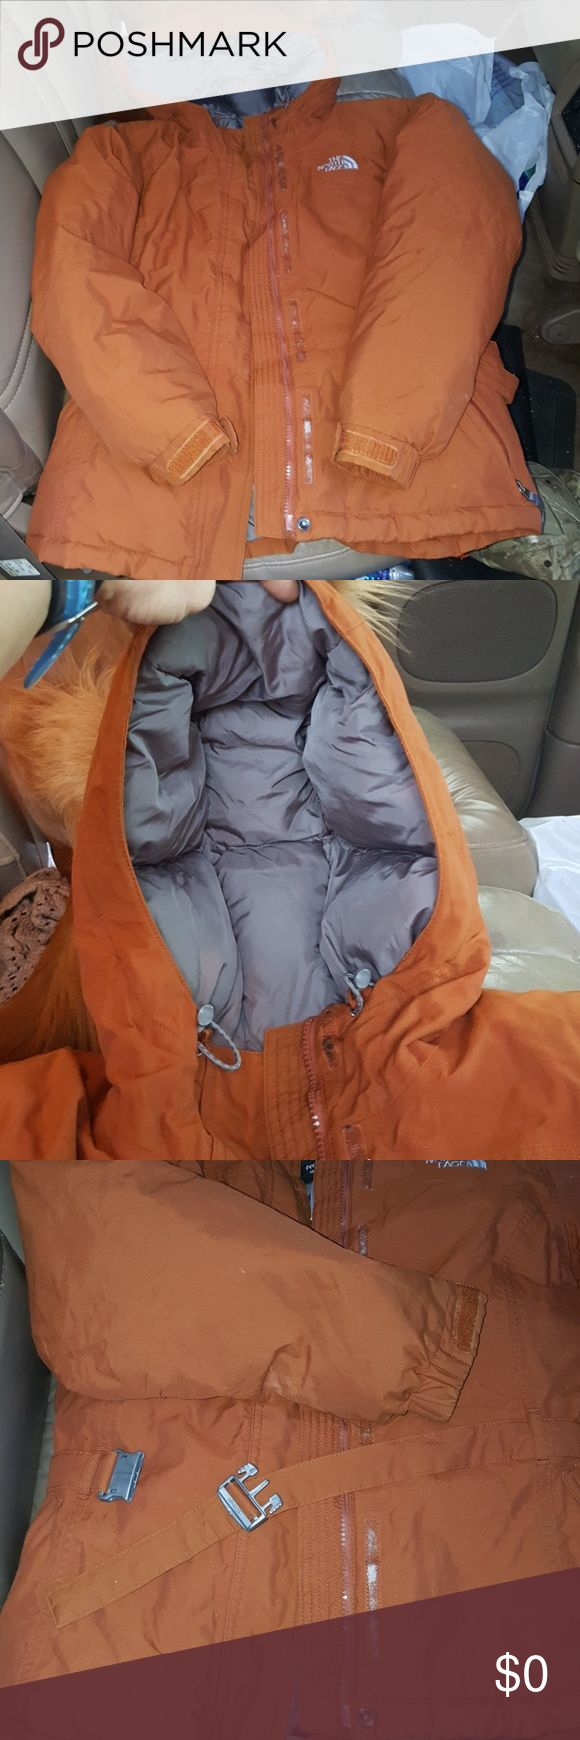 North Face/550 Goose Down Coat Ladies Medium. Great condition. Tons of life left. No holes or stains, nothing. Burnt orange color with quilted grey interior. Snap belt thats adjustable, waterproof exterior, Zipper hand pockets. Inside chest pocket. Mp3 holder/cell with headphone holder wtc... the coat is very warm. Hood doesnt come off. Shell is nylon. [One issue right now is that i cant find the fur that should attach to hood] price will be reflected. Any fur with a zipper can work. Goose…